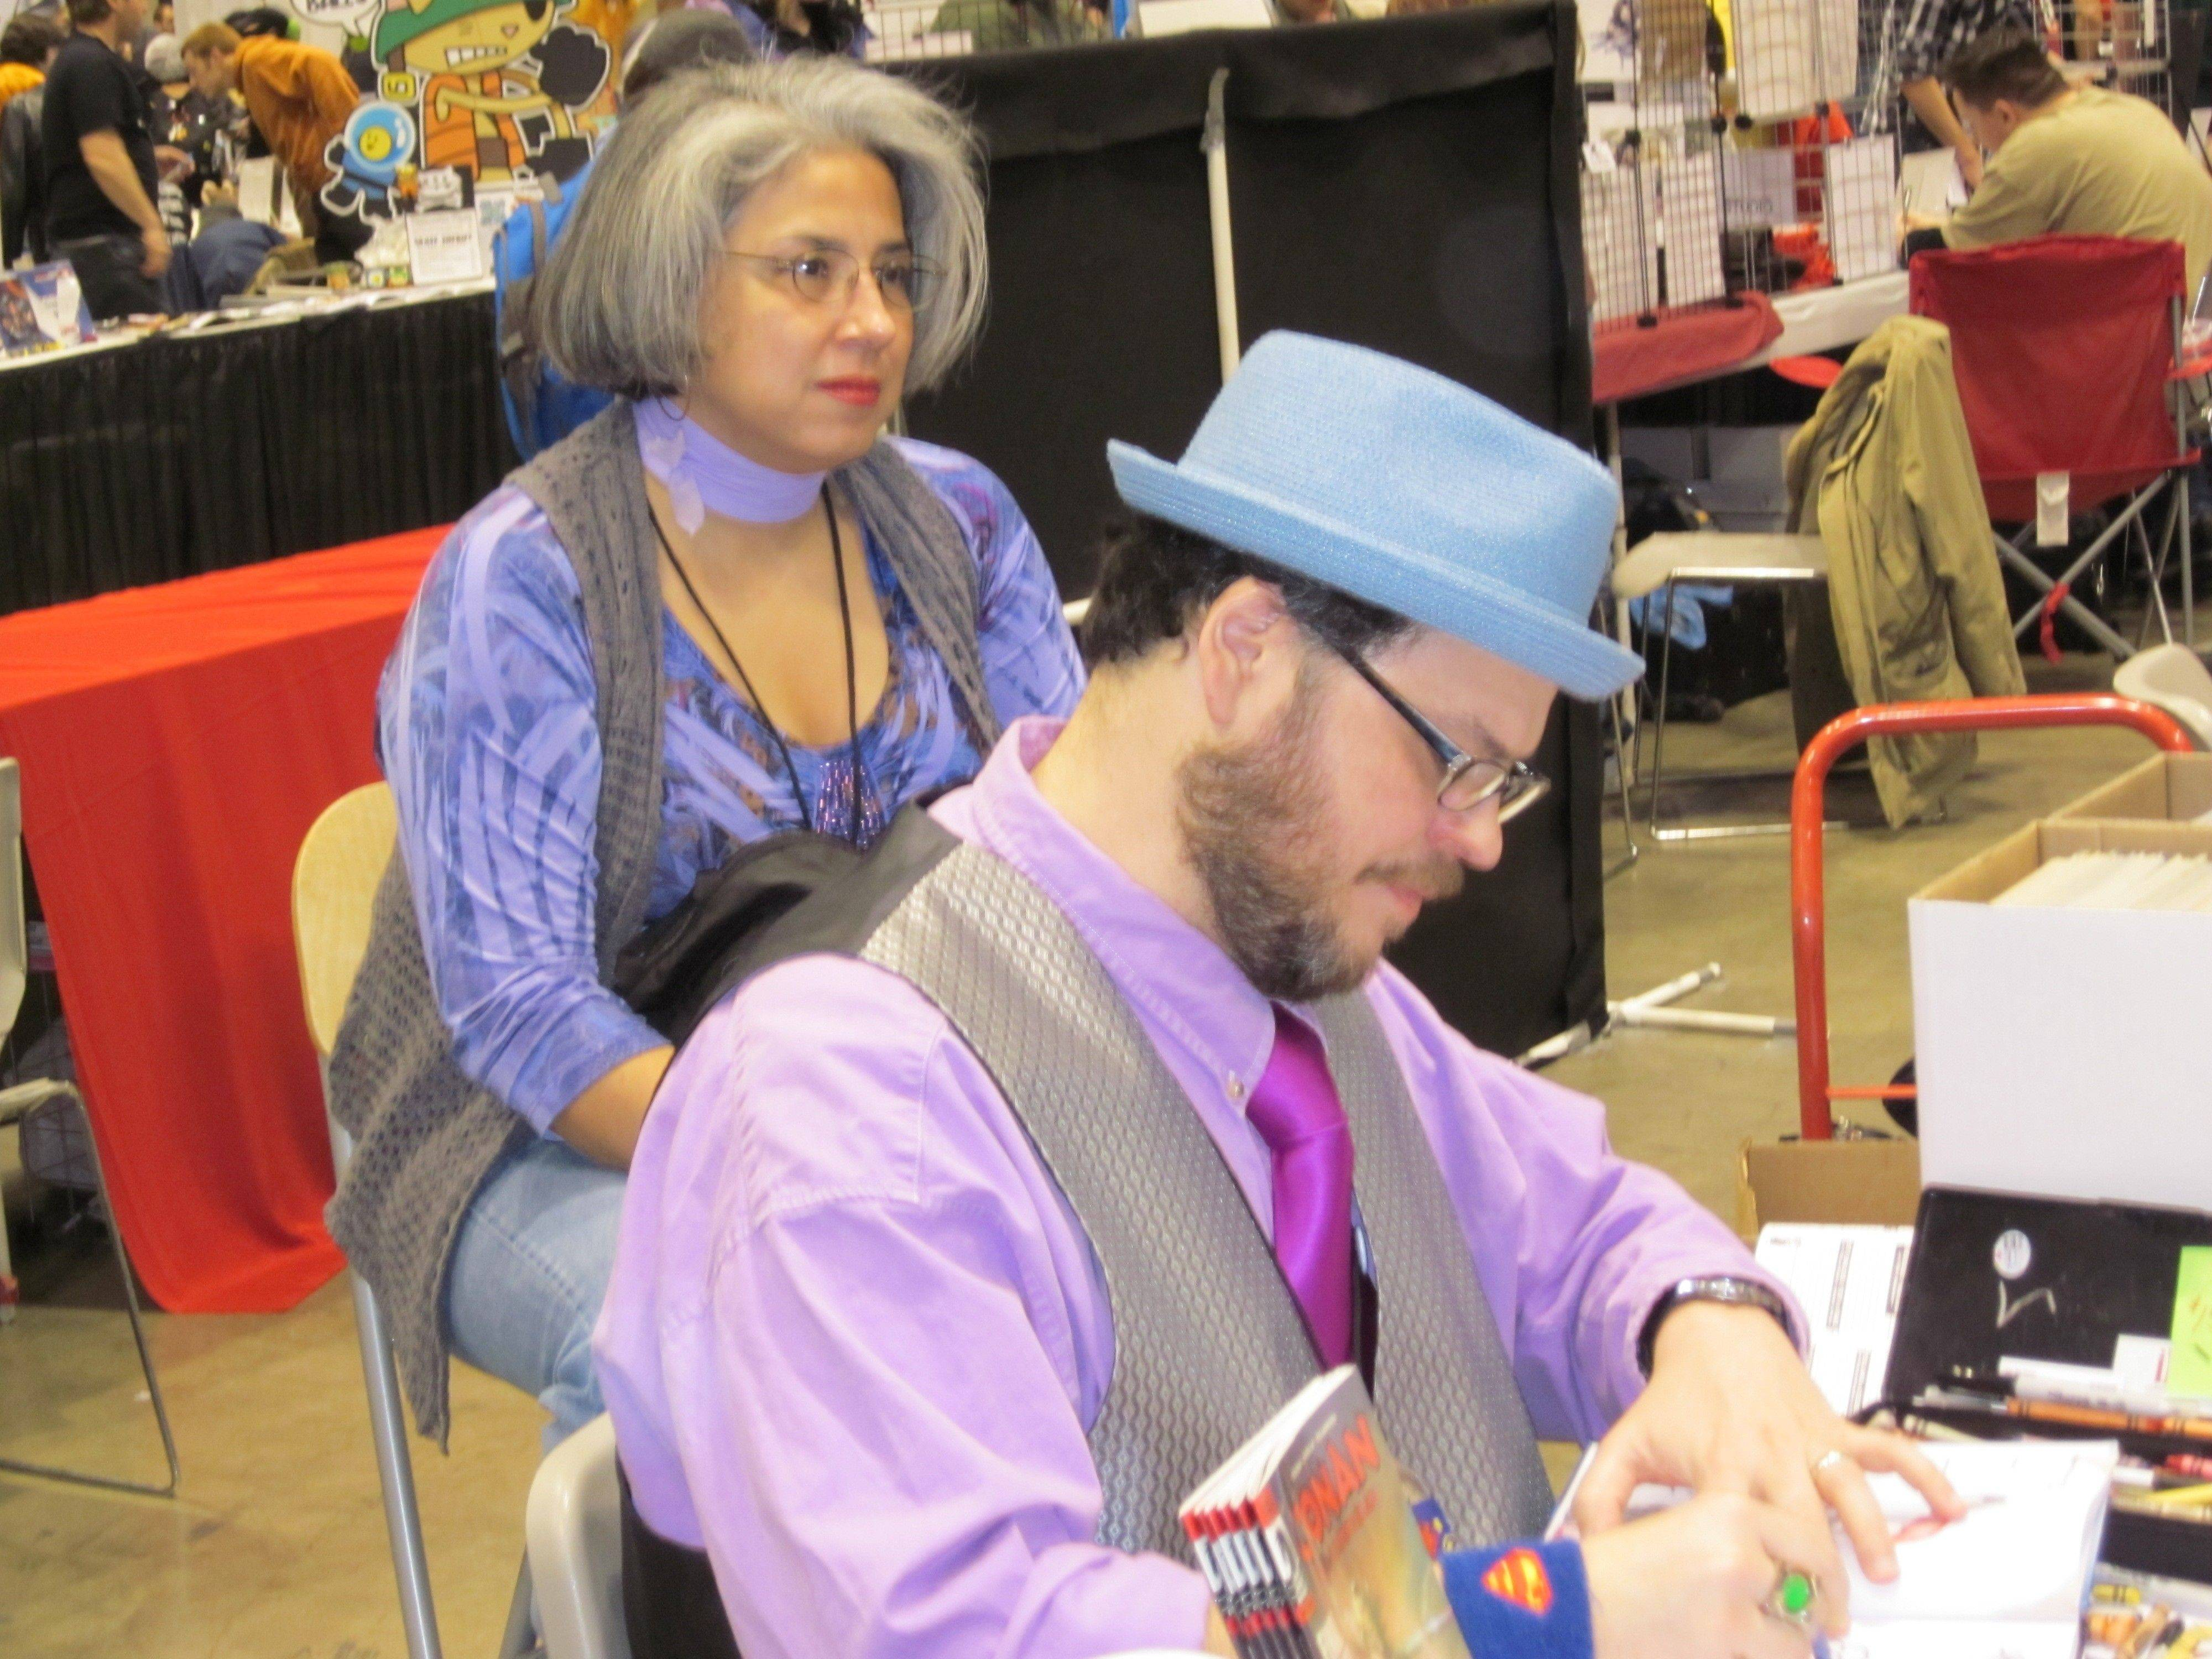 Streamwood's Art Baltazar draws sketches for fans as his wife, Rose, watches at Chicago's C2E2 convention.